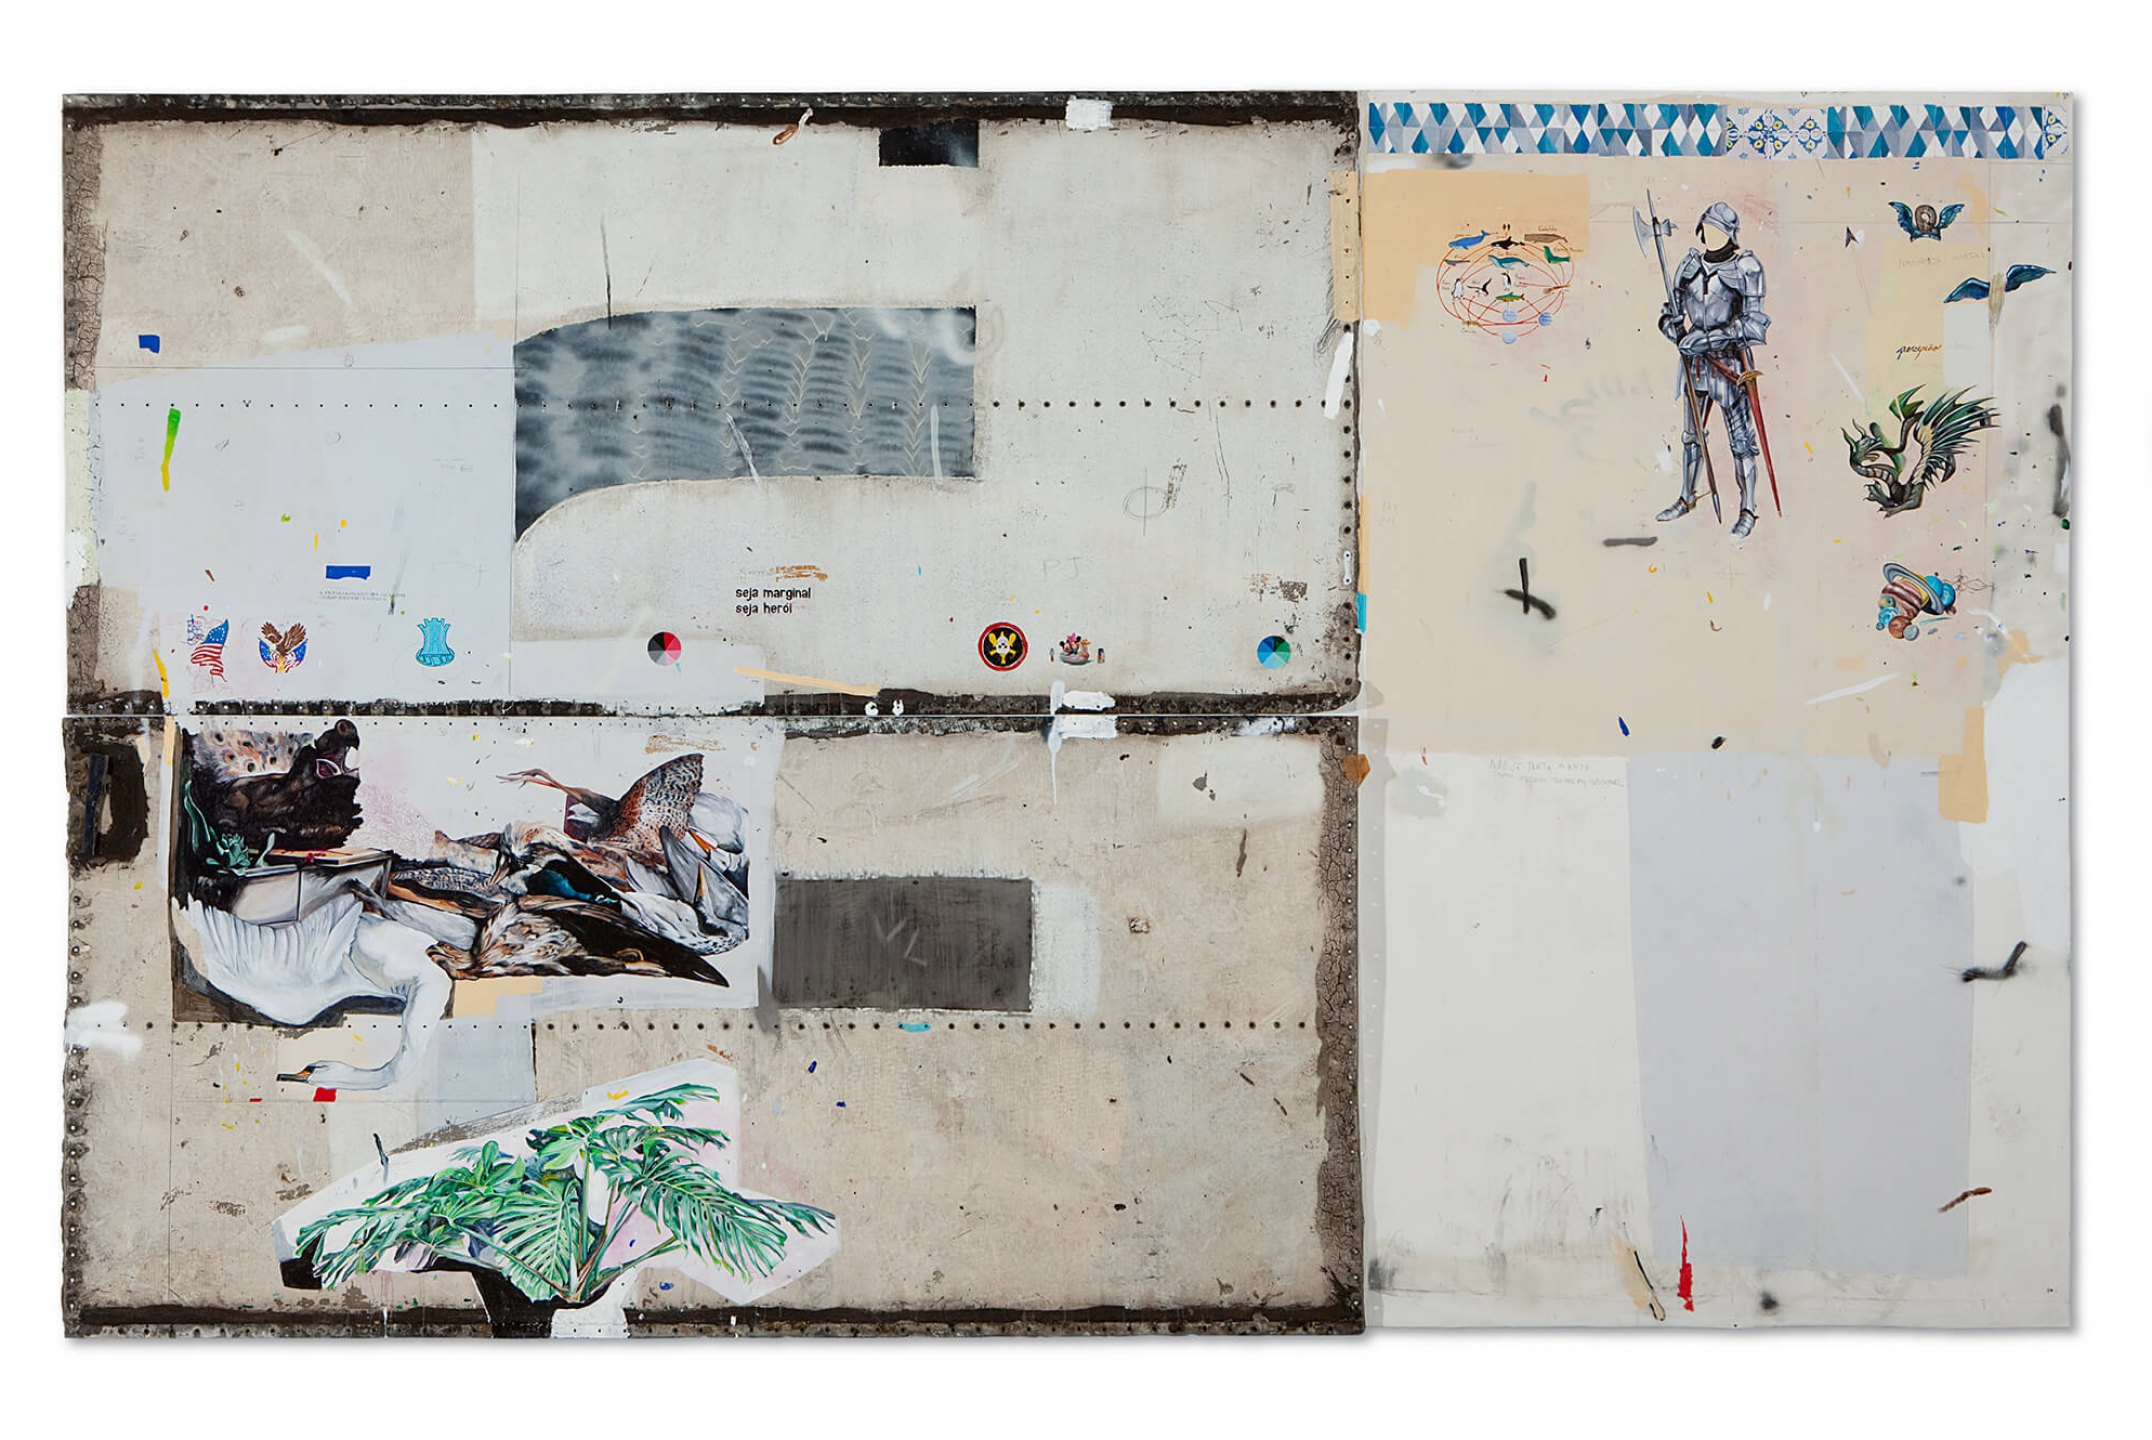 Paulo Nimer Pjota,&nbsp;<em>Dialogo entre Arranjos, </em>Constelações e Tempo 1, 2013,&nbsp;acrilic, synthetic enamel, pencil and pen on canvas and iron plate,&nbsp;246 x 400 cm (triptych - 123 x 259 cm each metal plate, 246 x 141 cm canvas) - Mendes Wood DM